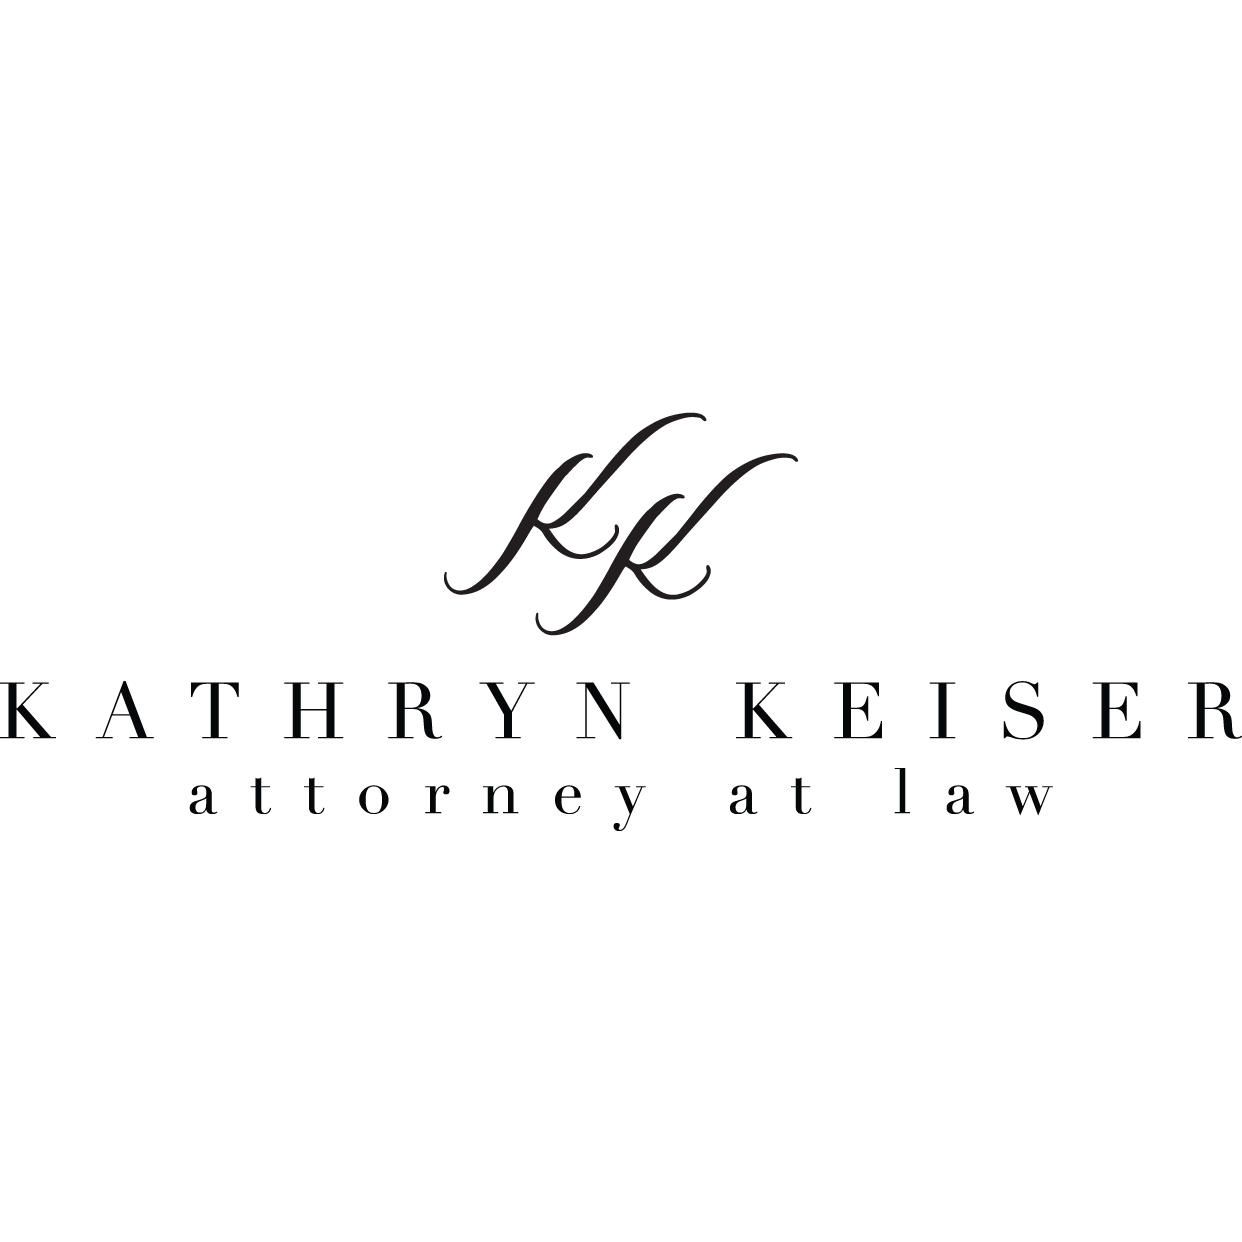 General Practice Attorney in MT Bozeman 59715 Kathryn Keiser Attorney at Law 40 East Main Street  (706)624-6060